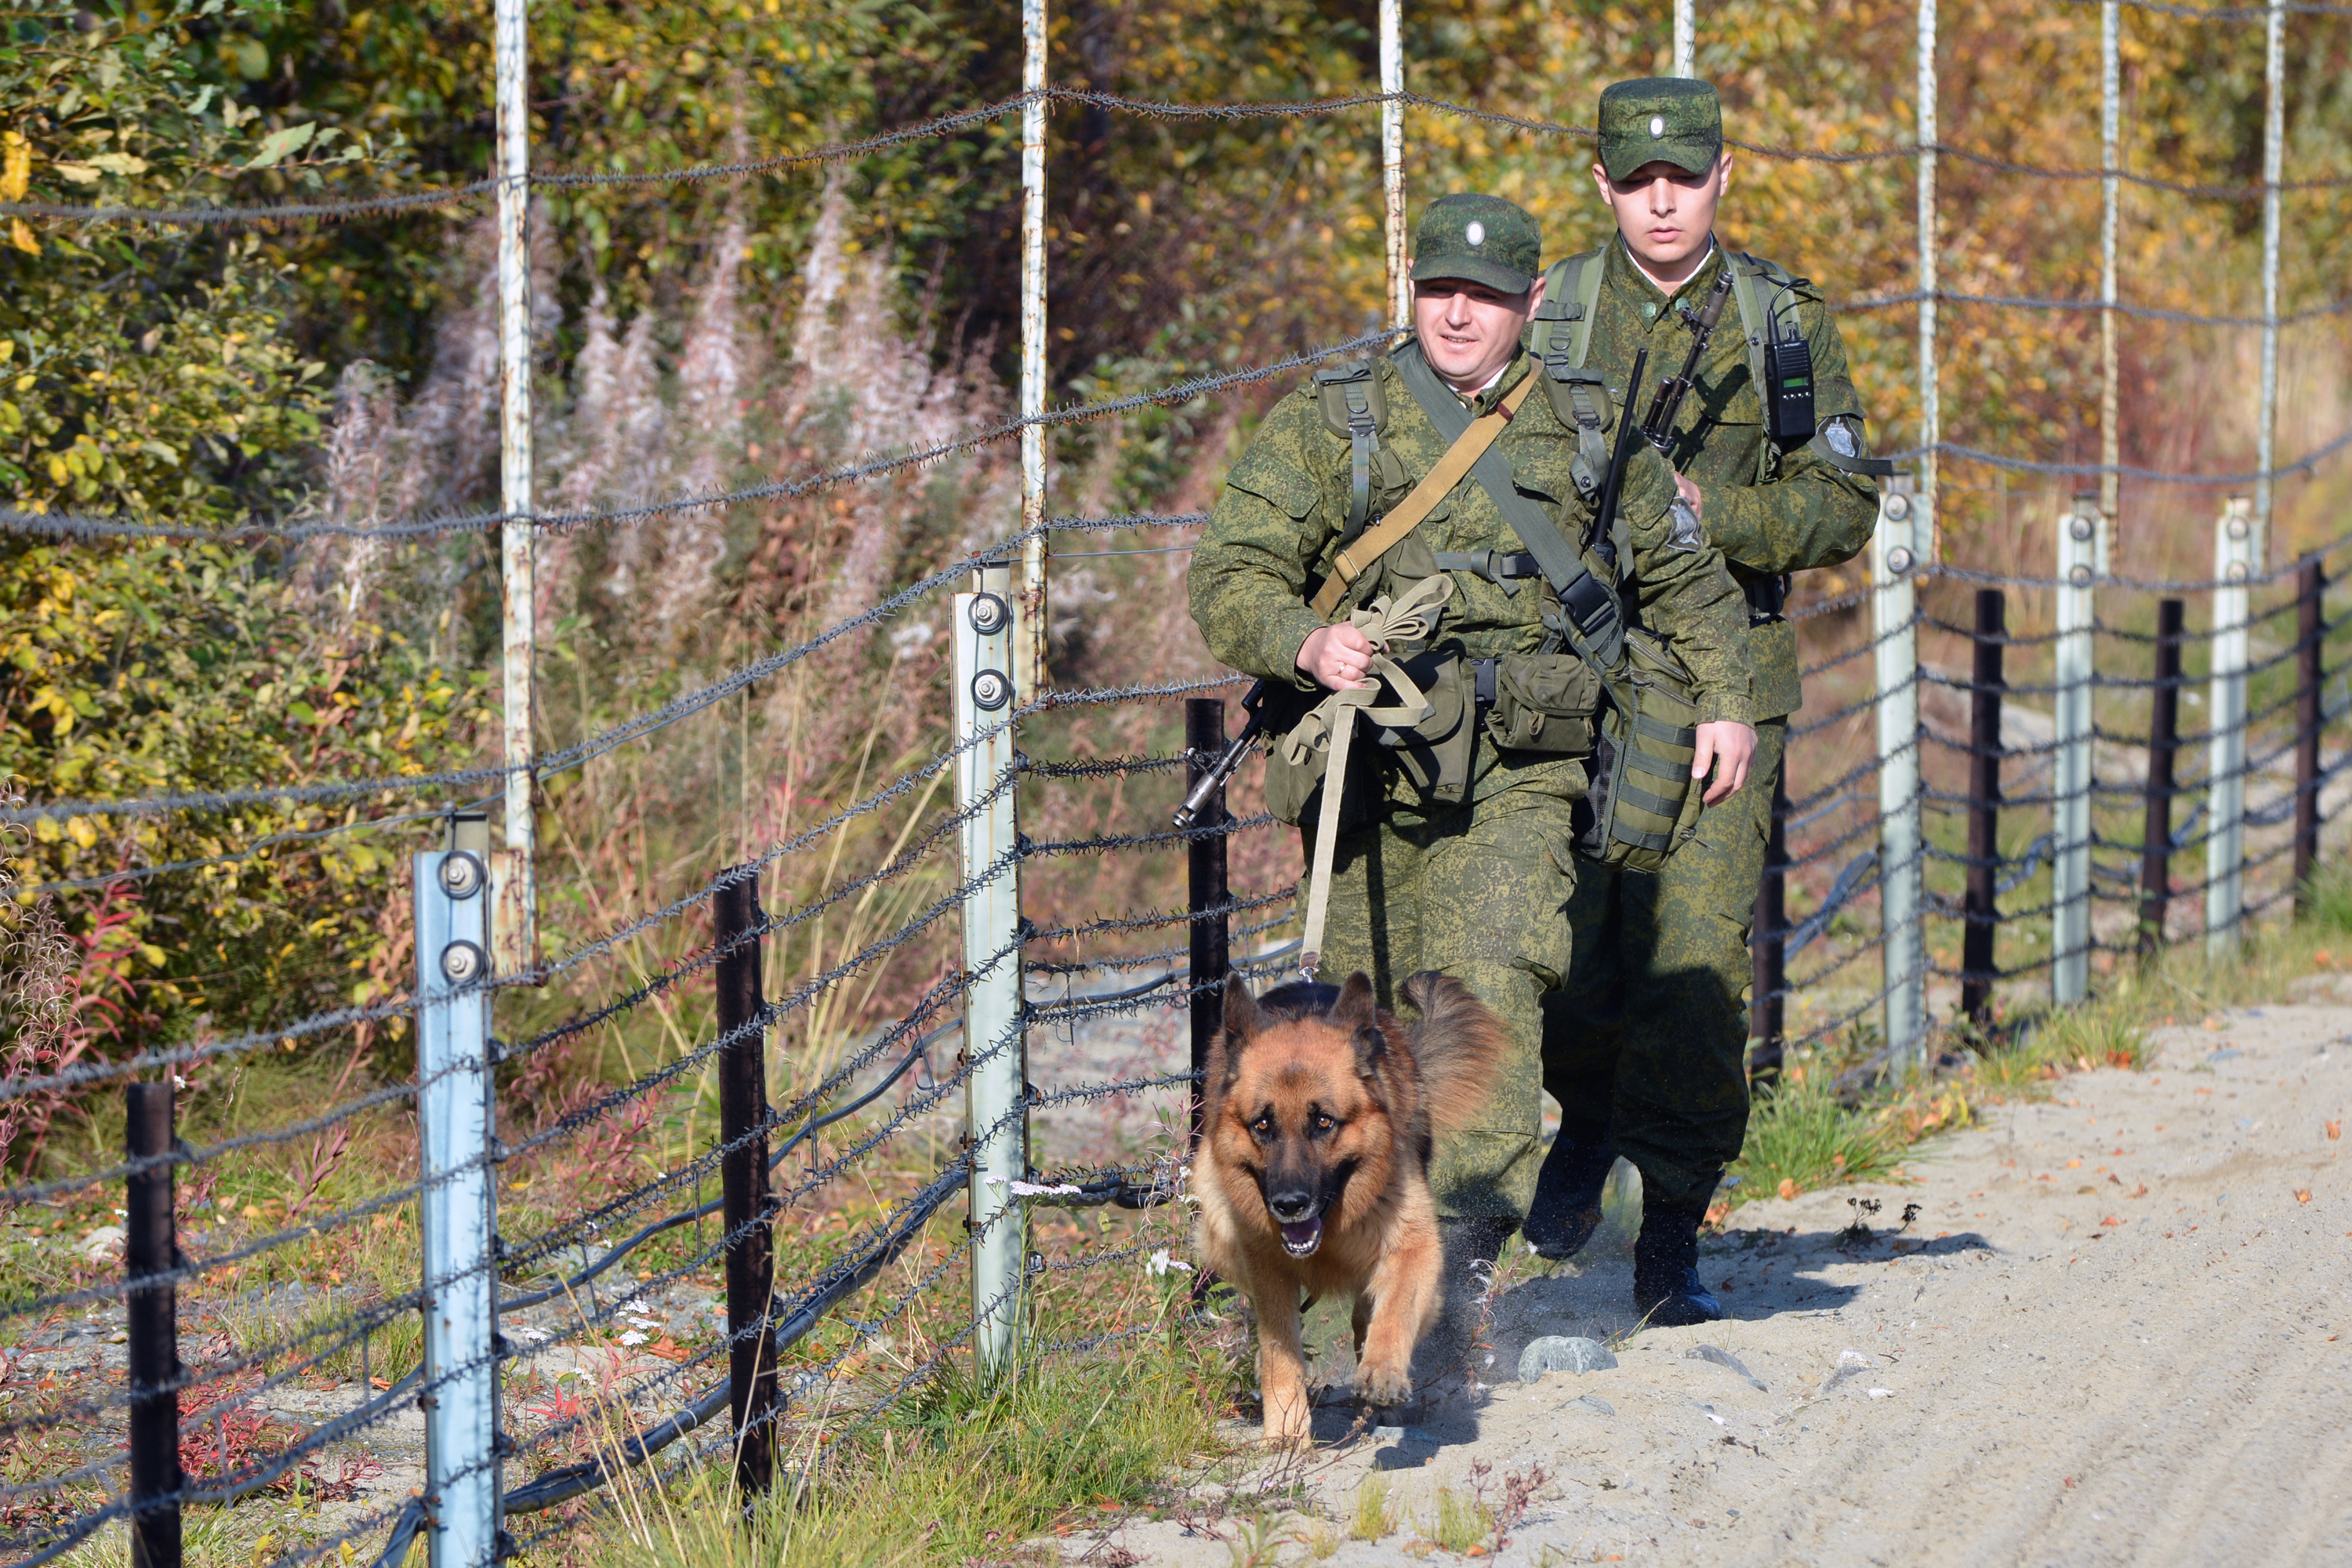 hunting_border_guards_with_dog_edited